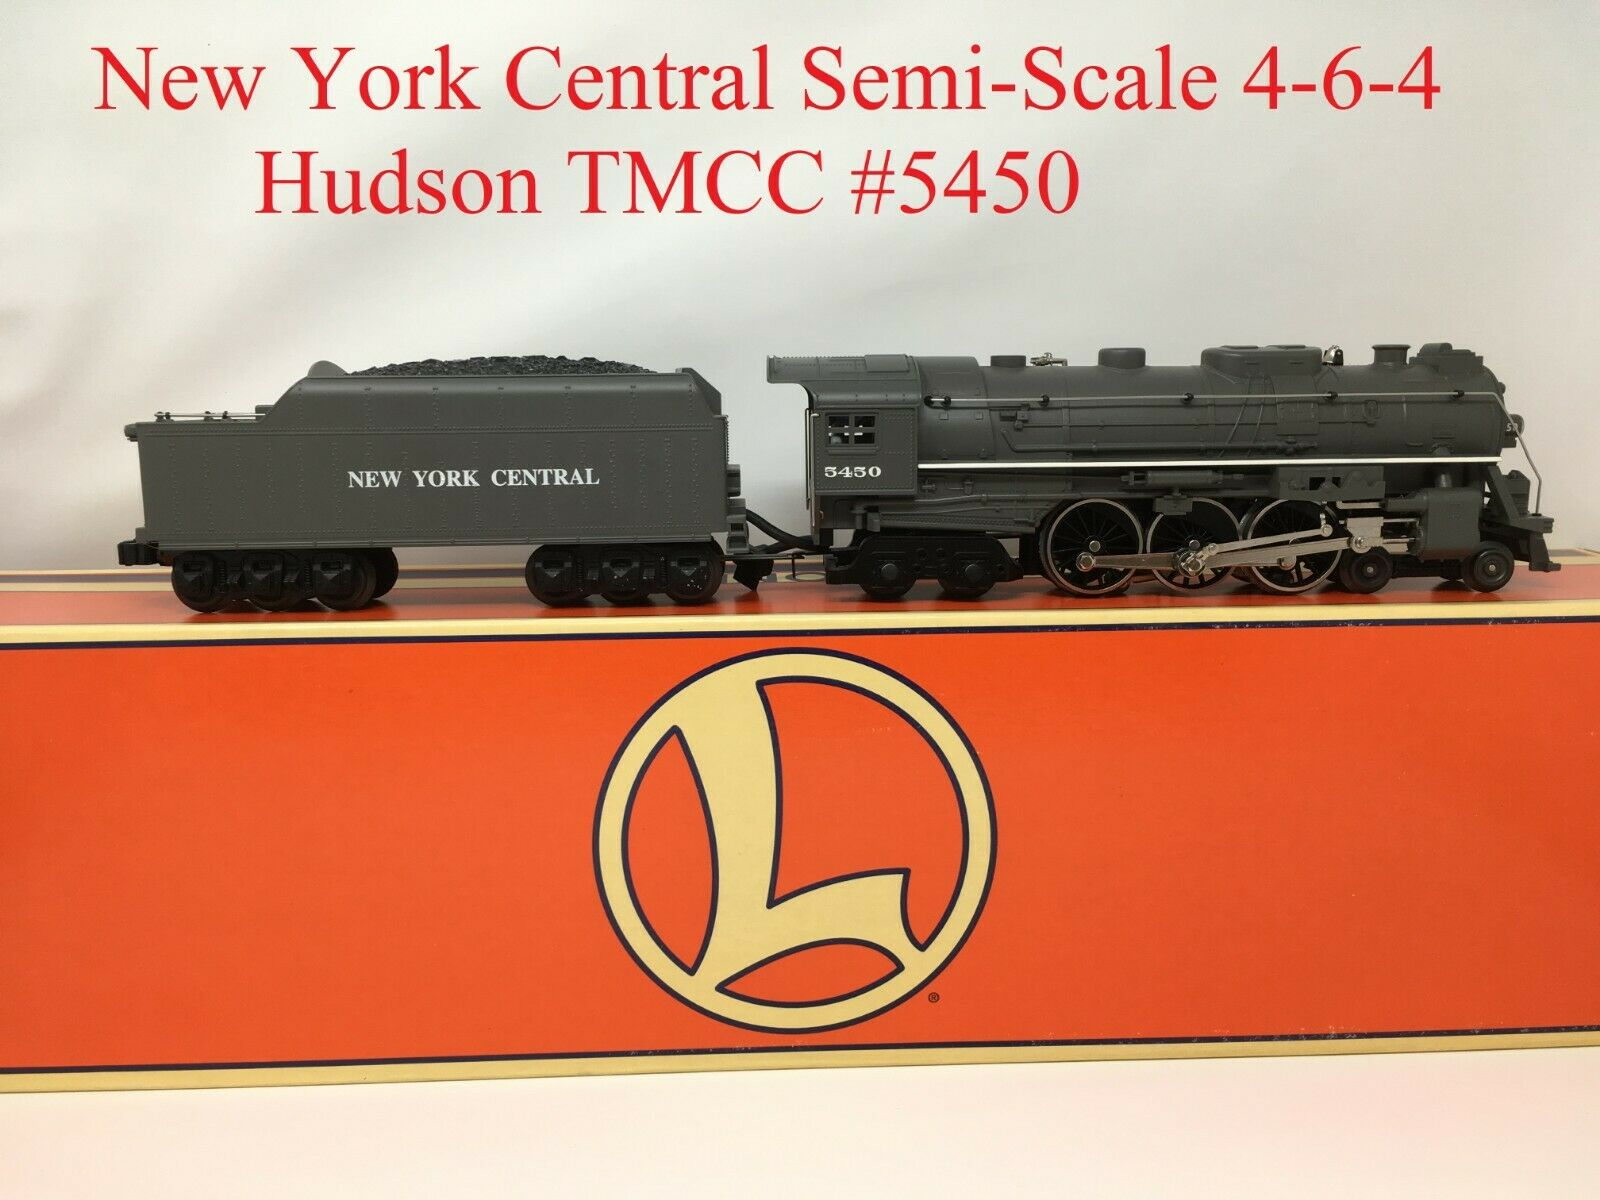 LIONEL 6-28030 New York Central Semi-Scale 4-6-4 Hudson (grigio)  TMCC  5450 O